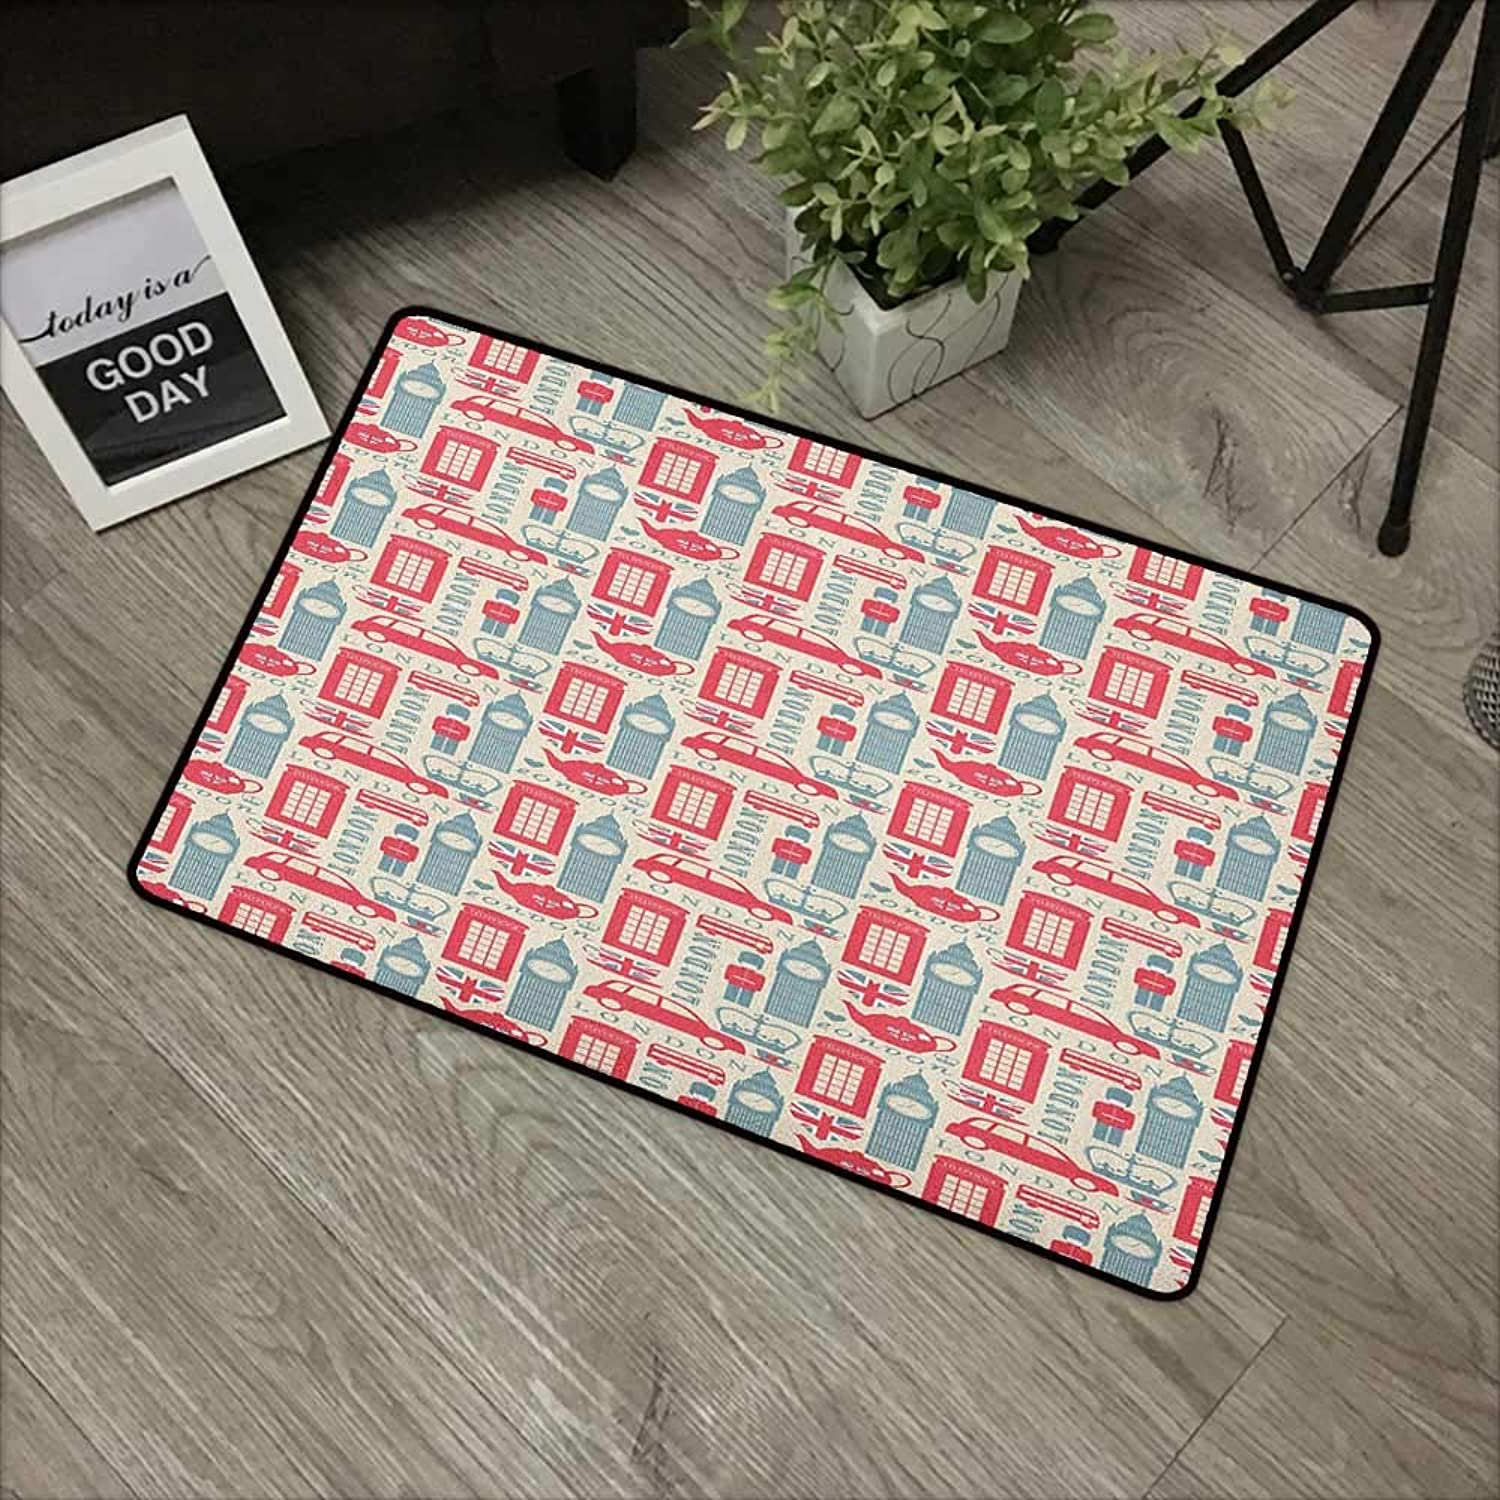 Pad W35 x L59 INCH London,Popular British Culture Elements Retro colors Flag Patterned Hearts, Dark Coral blueegrey Cream Non-Slip, with Non-Slip Backing,Non-Slip Door Mat Carpet